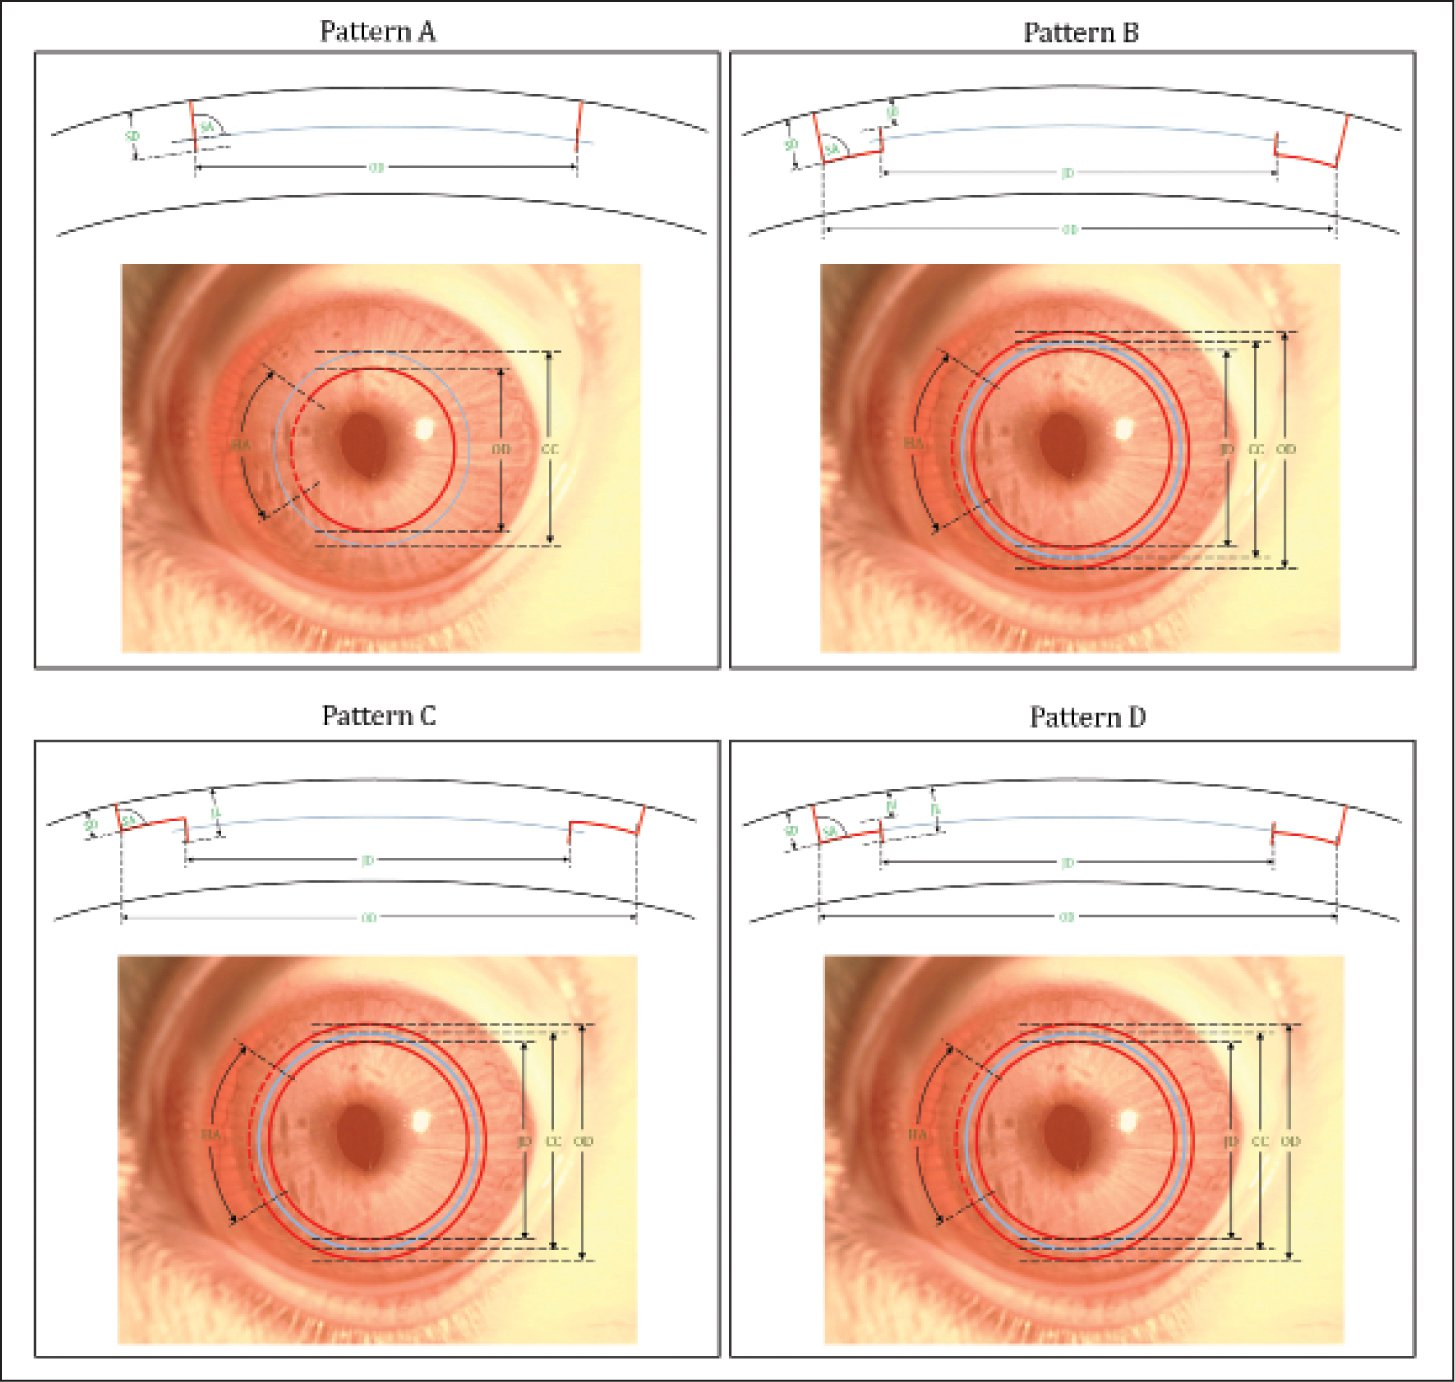 Illustrations of the tested VisuMax Circle patterns (Carl Zeiss Meditec, Jena, Germany) and the incision parameters selected for respective pattern. Pattern A creates a side cut within the cap cut (CC; in blue). Pattern B creates a lamellar ring posterior to the cap cut. Pattern C creates a lamellar ring anterior to the cap cut. Pattern D creates a lamellar ring adjacent to the cap cut. The parametric settings of the patterns tested in the current study can be found in Table 1. OD = outer diameter; JD = junction diameter; SD = side cut depth; SA = side cut angle; HA = hinge angle; JU = junction upper depth; JL = junction lower depth